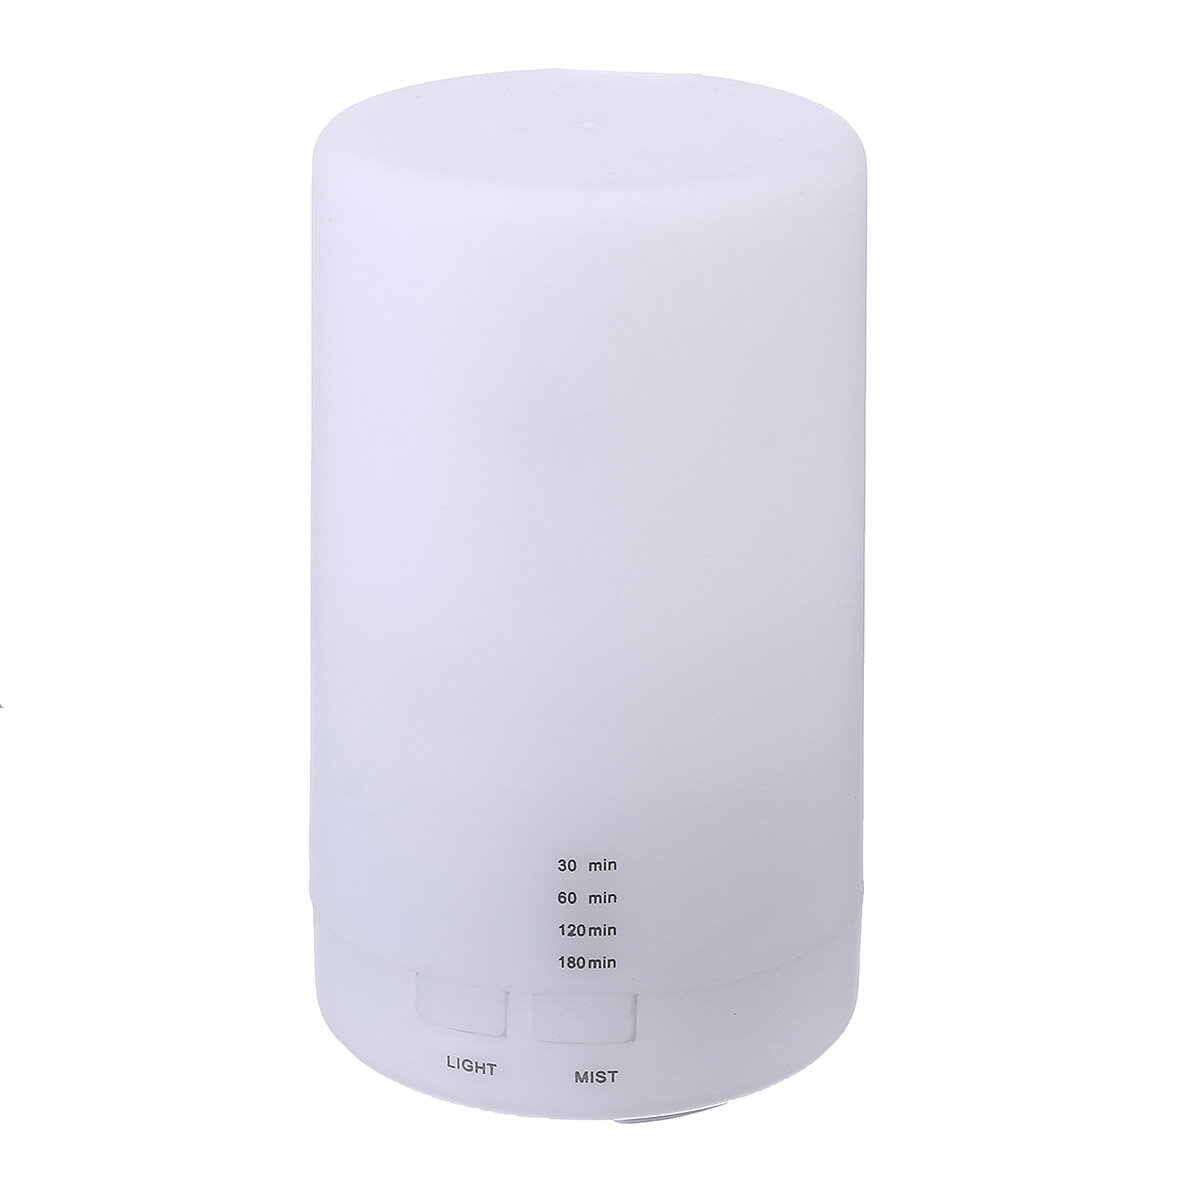 7 LED Ultrasonic Aroma Essential Diffuser Air Humidifier Purifier Aromatherapy Timing Function - 4